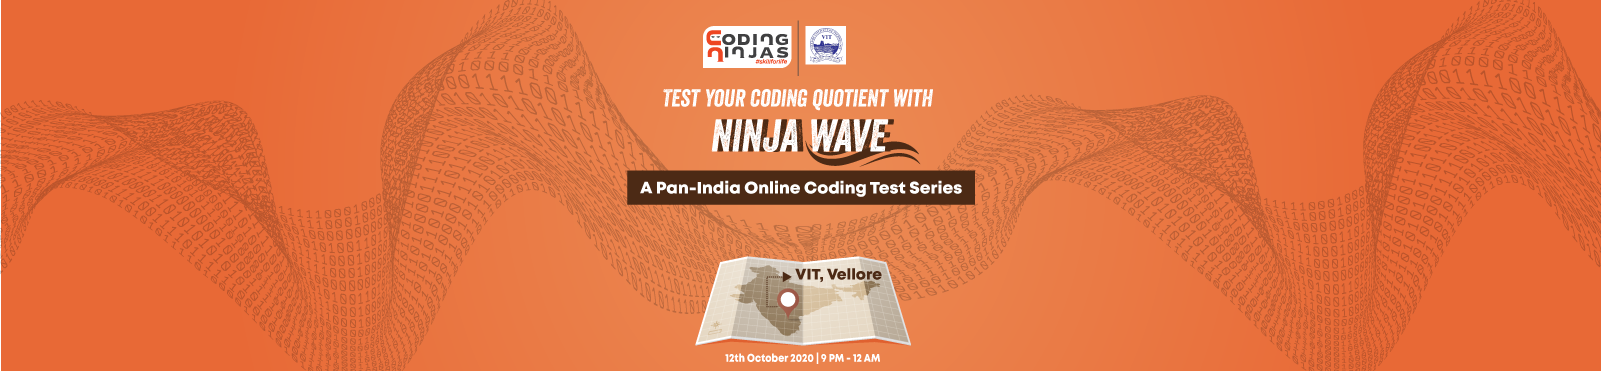 Ninja Wave at Vellore Institute of Technology, Vellore